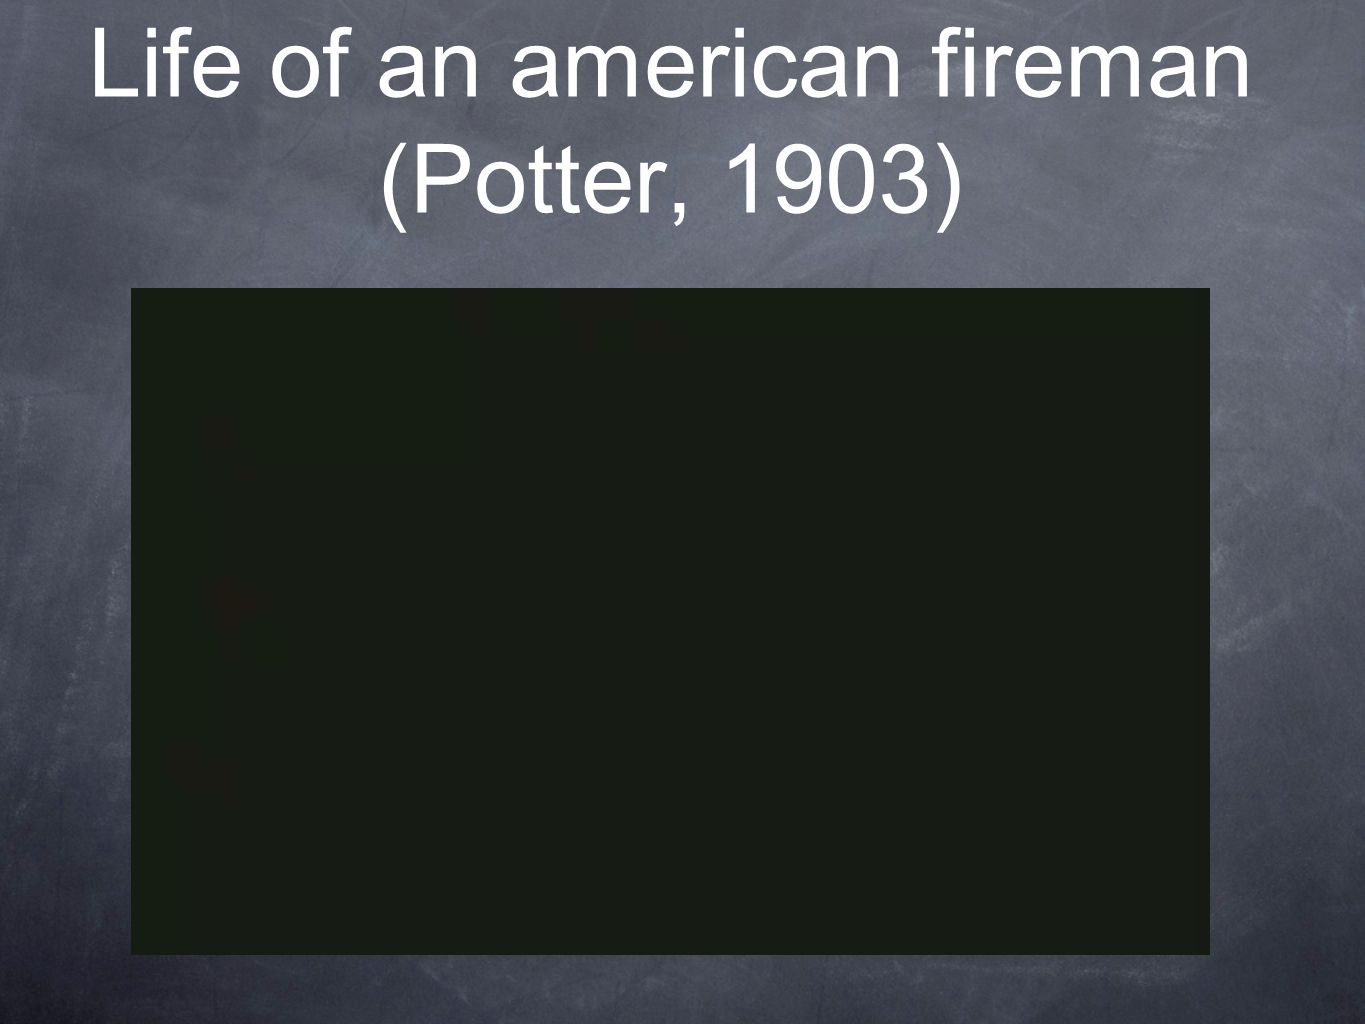 Life of an american fireman (Potter, 1903)